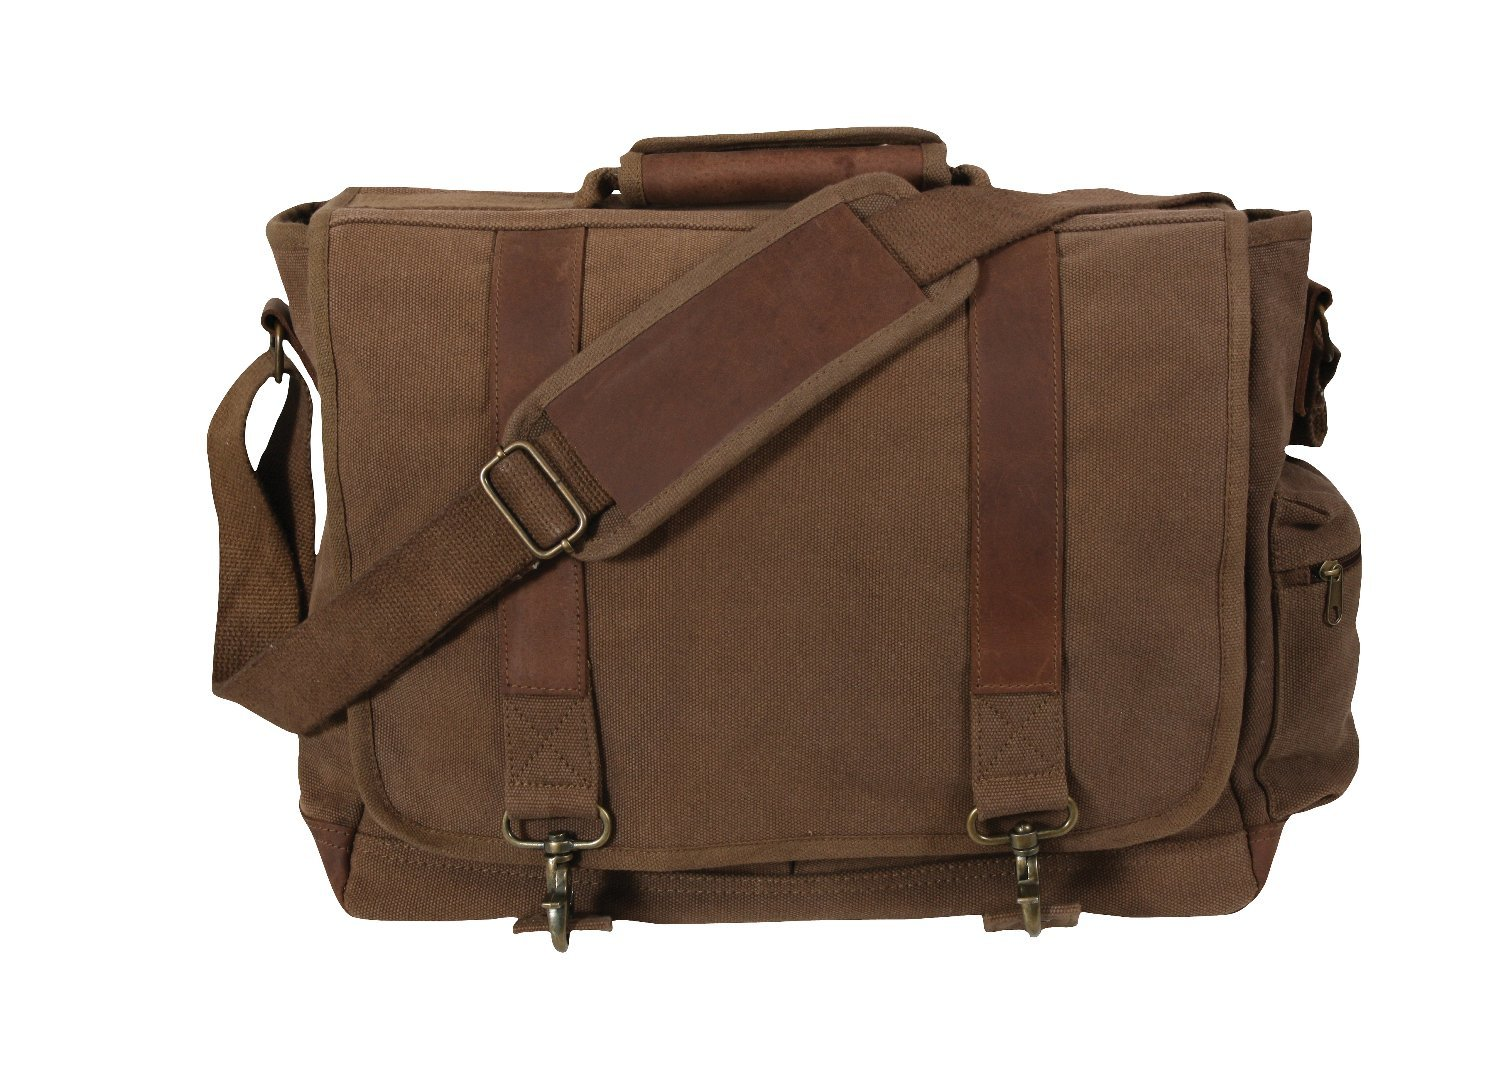 Rothco Canvas/Leather Pathfinder Laptop Bag, E. BROWN Size by Rothco